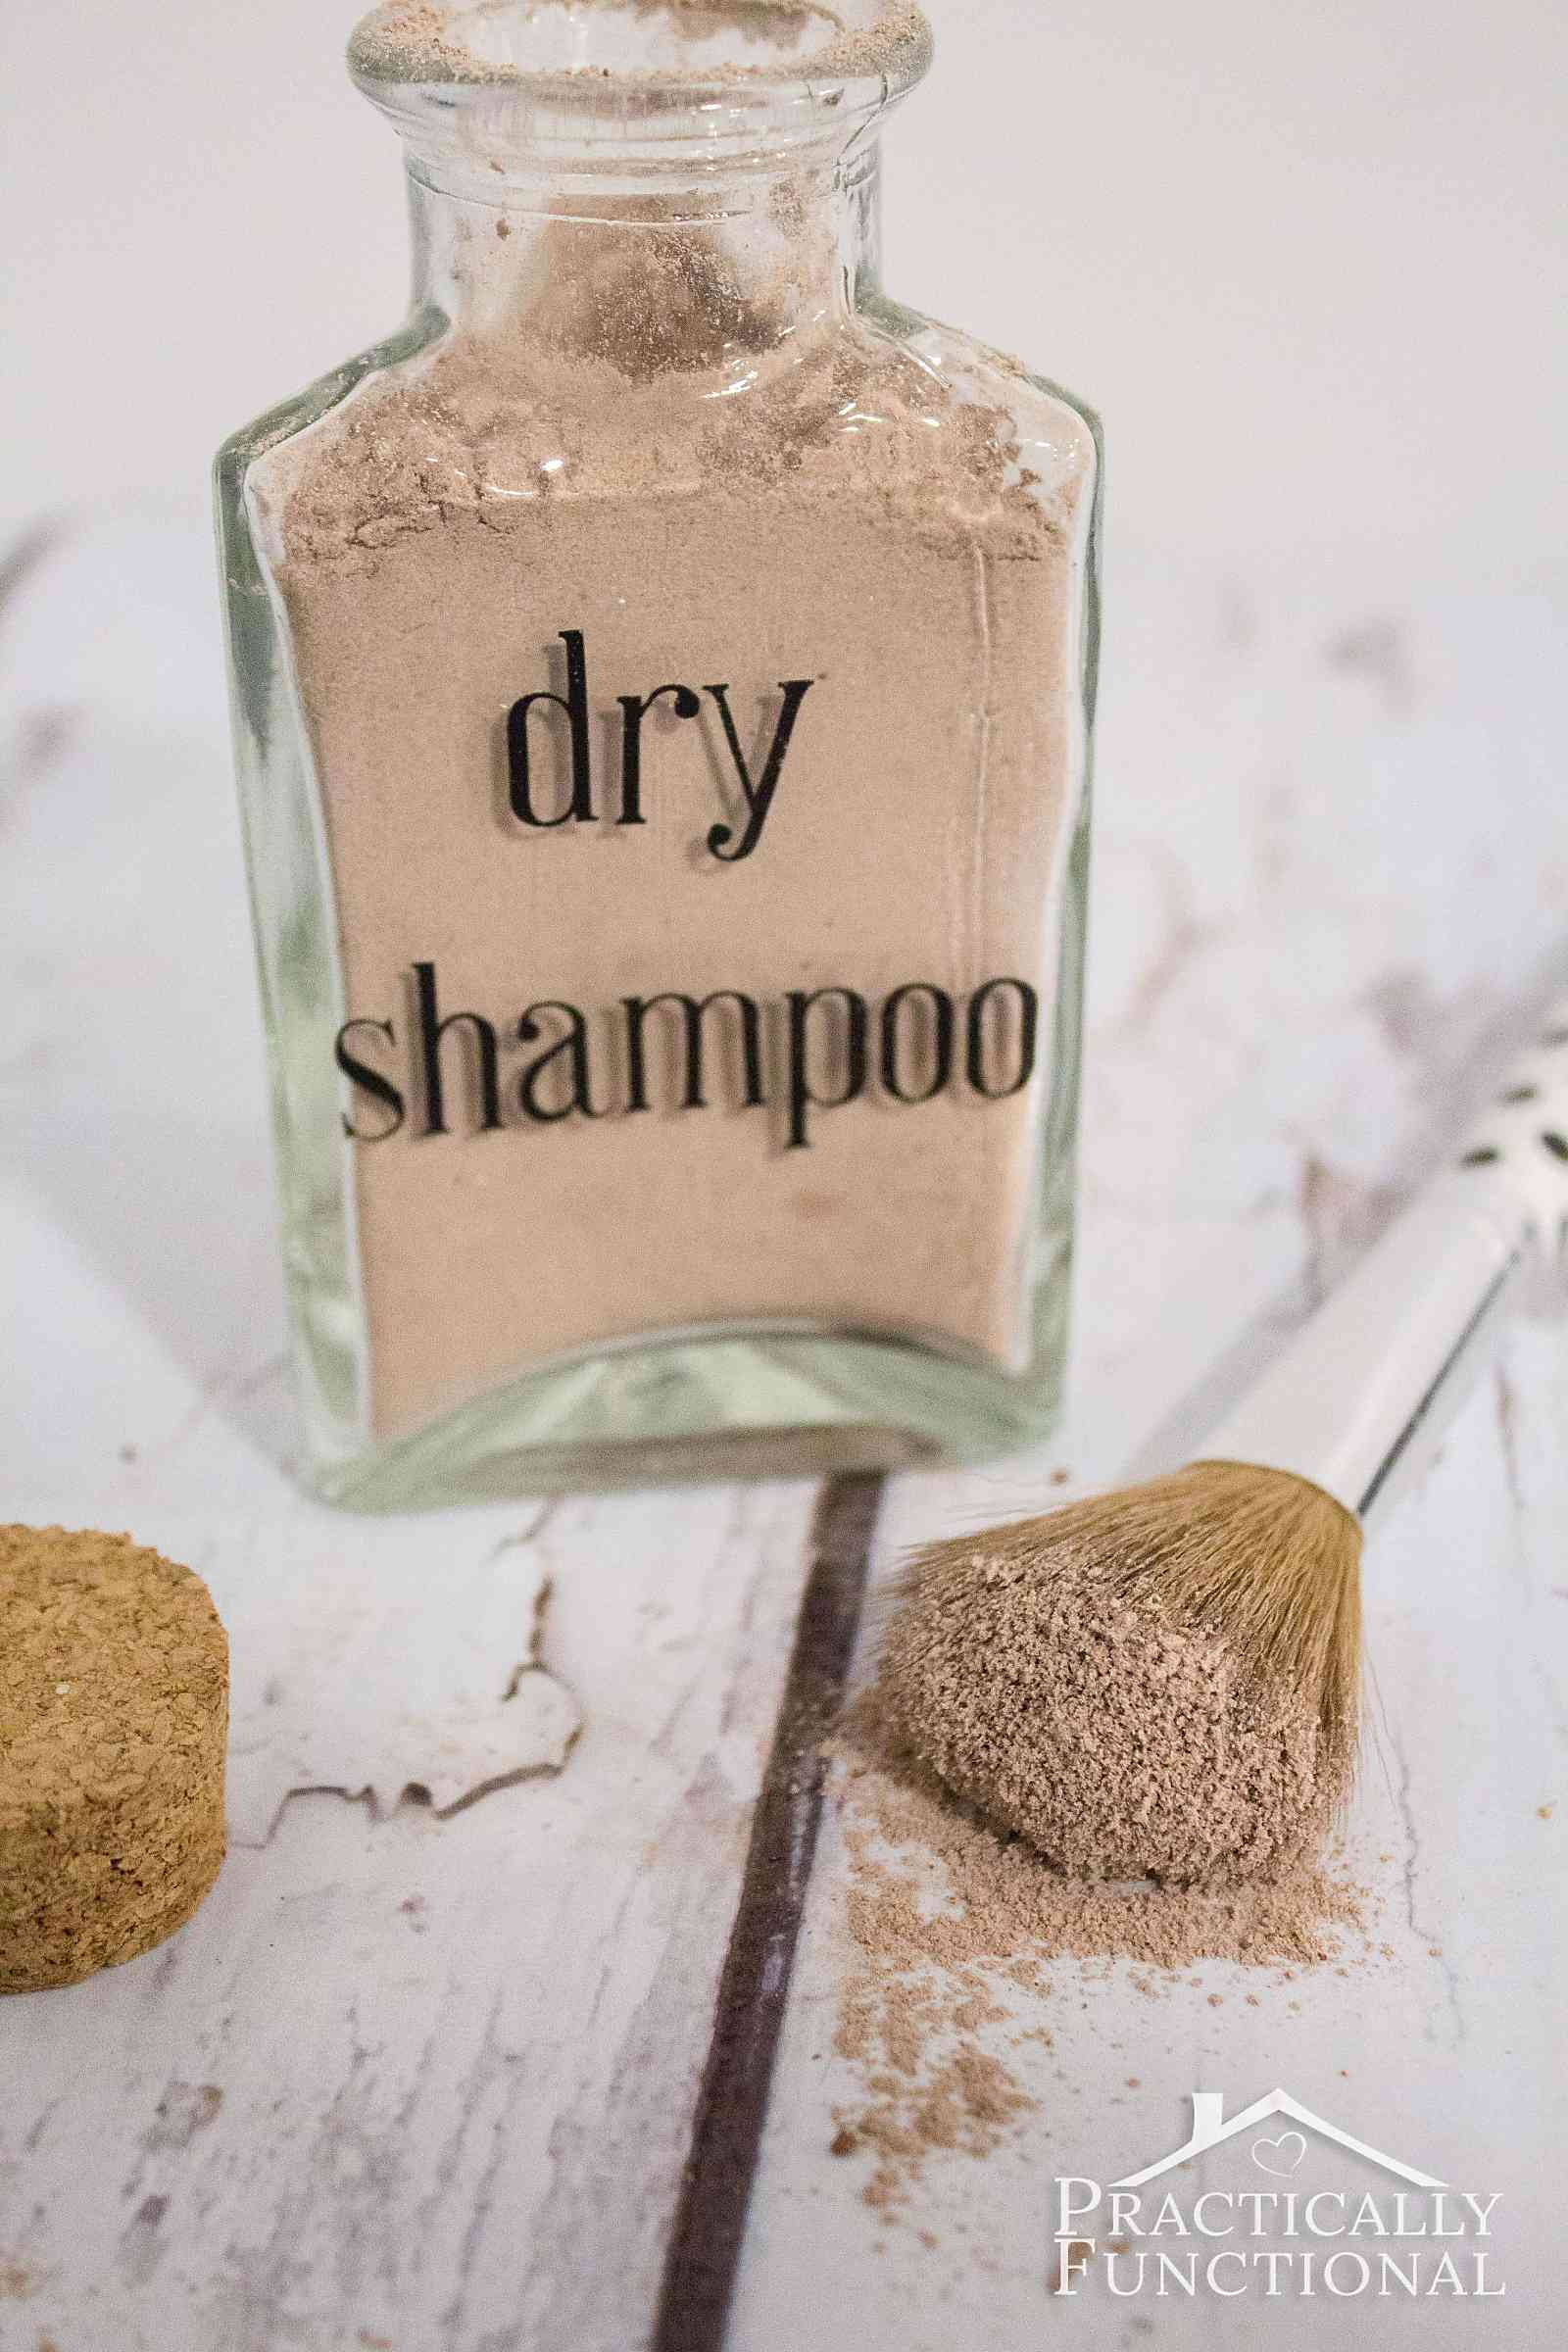 This is my favorite DIY dry shampoo recipe for dark hair; gets rid of the greasy shine and adds a ton of volume so you can style your hair just like normal! (Works for light hair too, just leave out the cocoa powder)